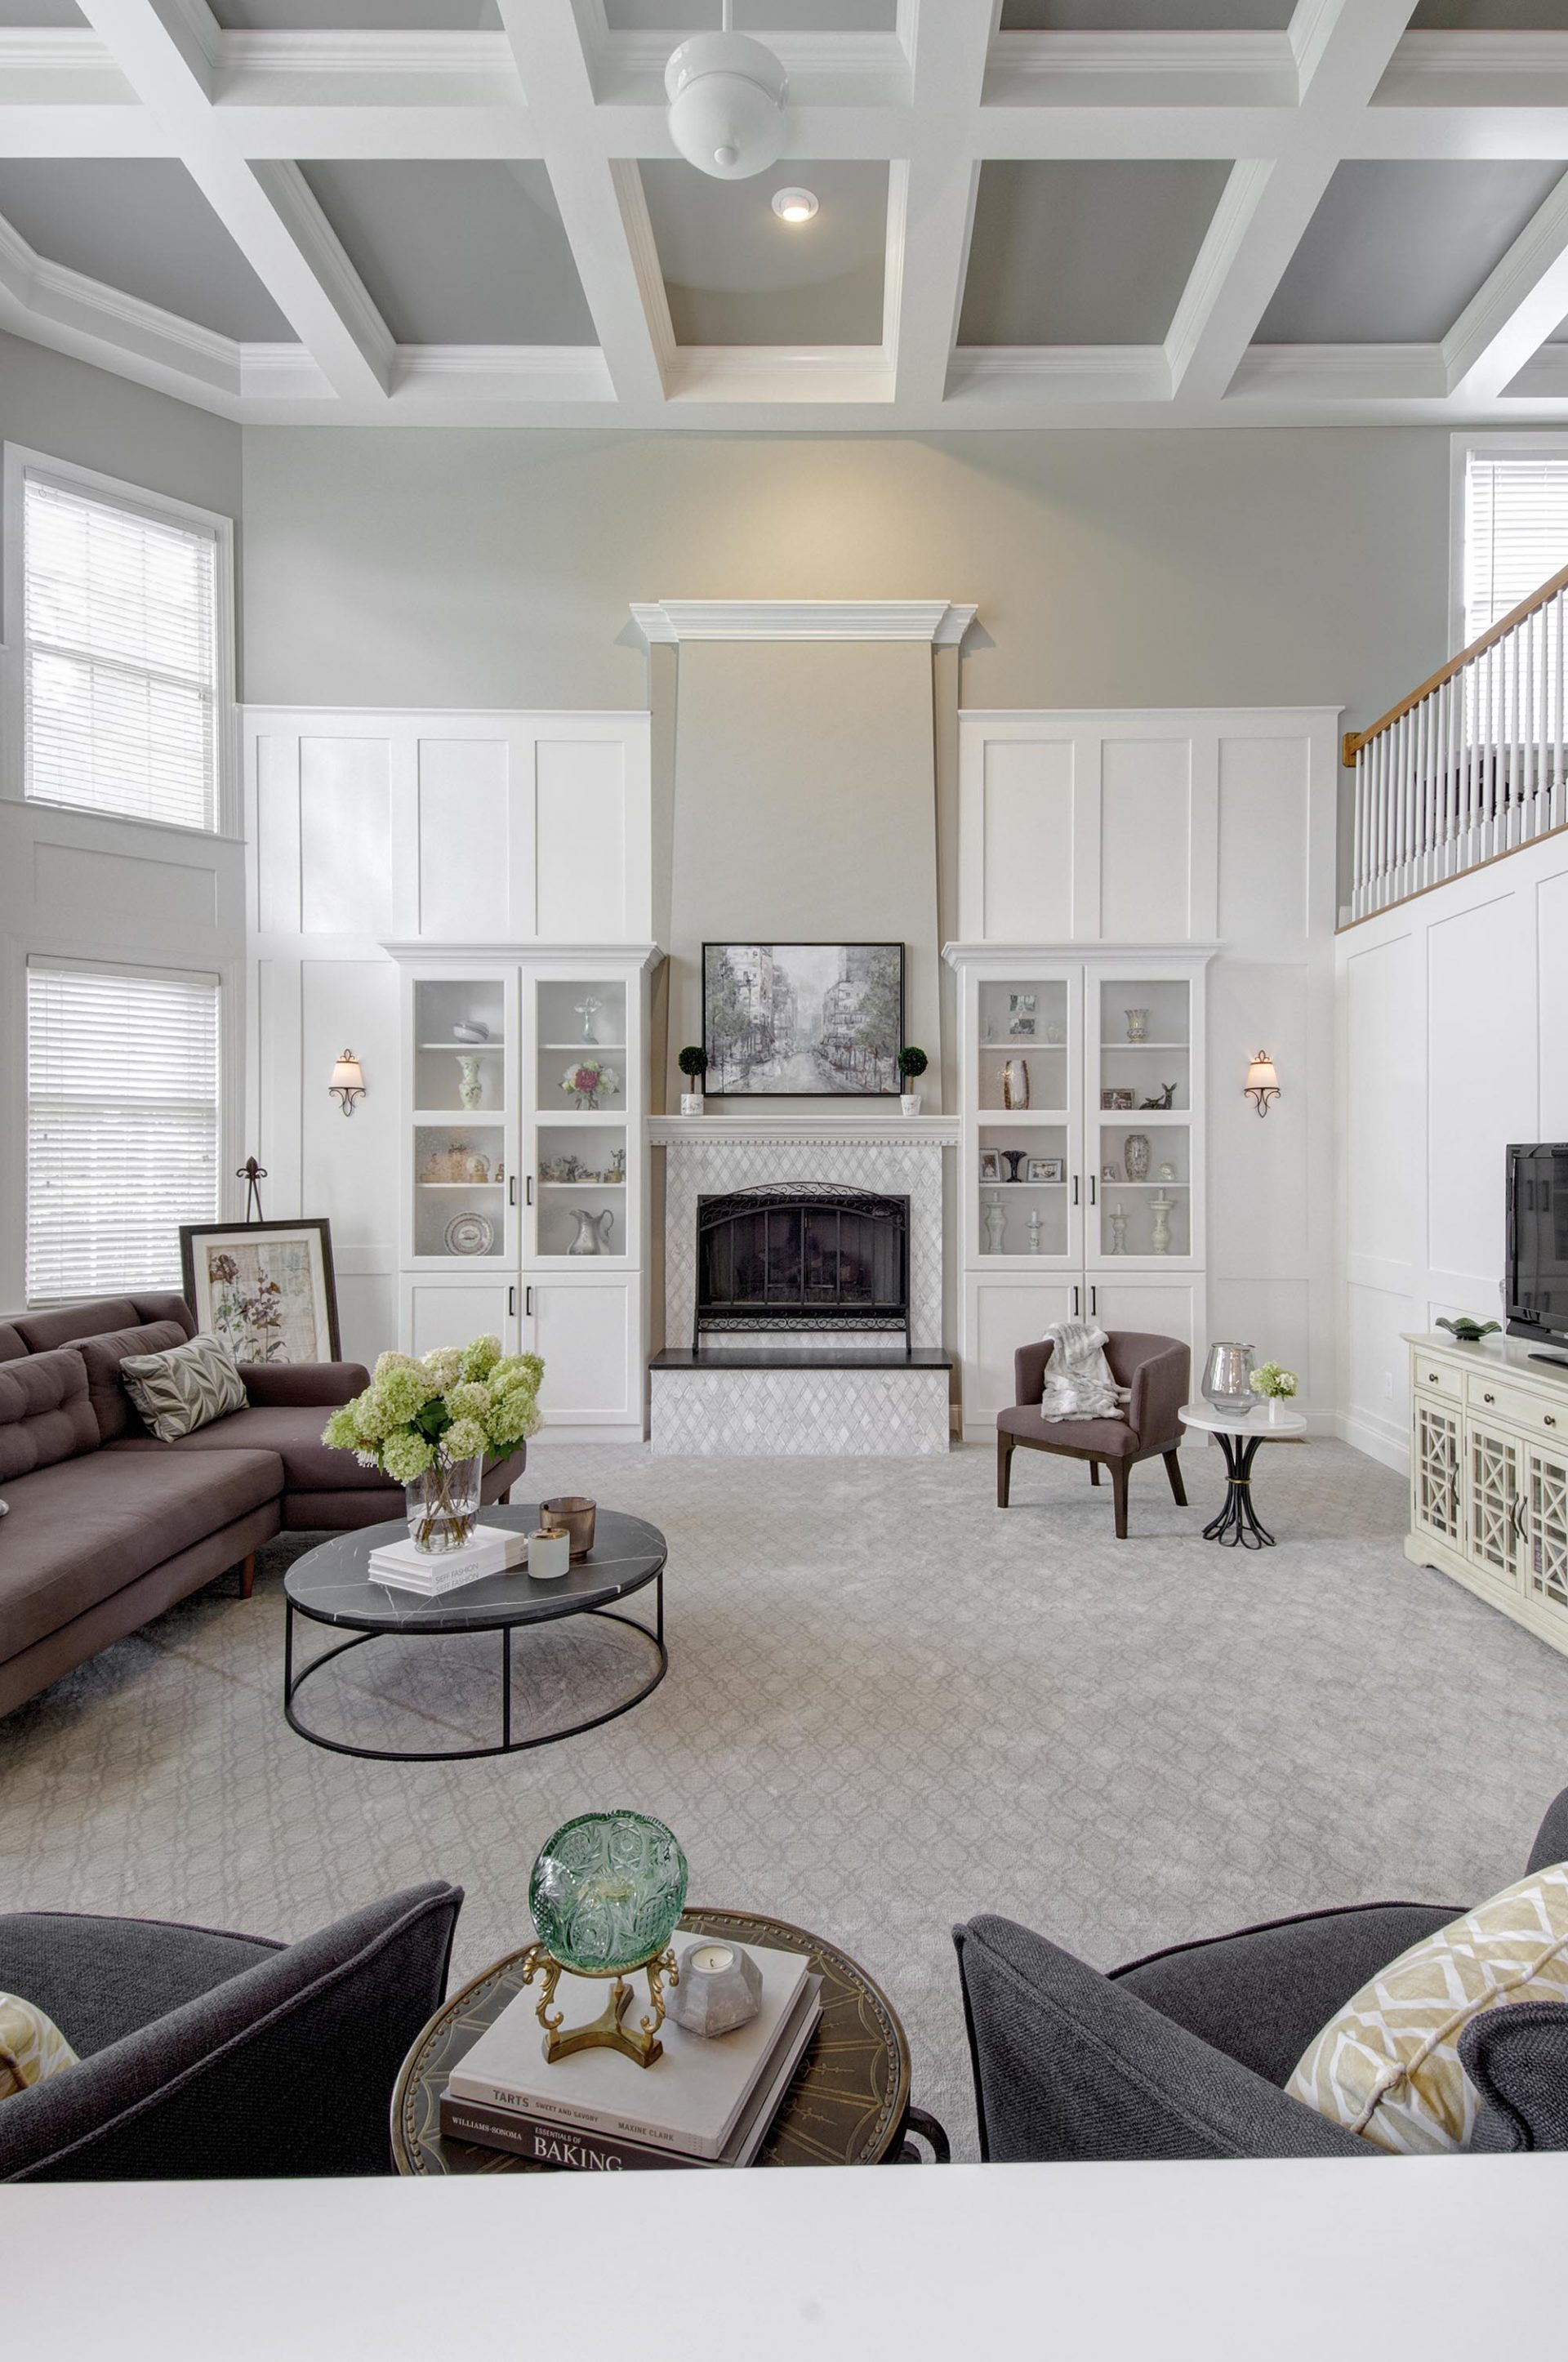 Living Room, Dublin, Dave Fox, Remodel, wainscoting, coffered ceilings, fireplace, tile